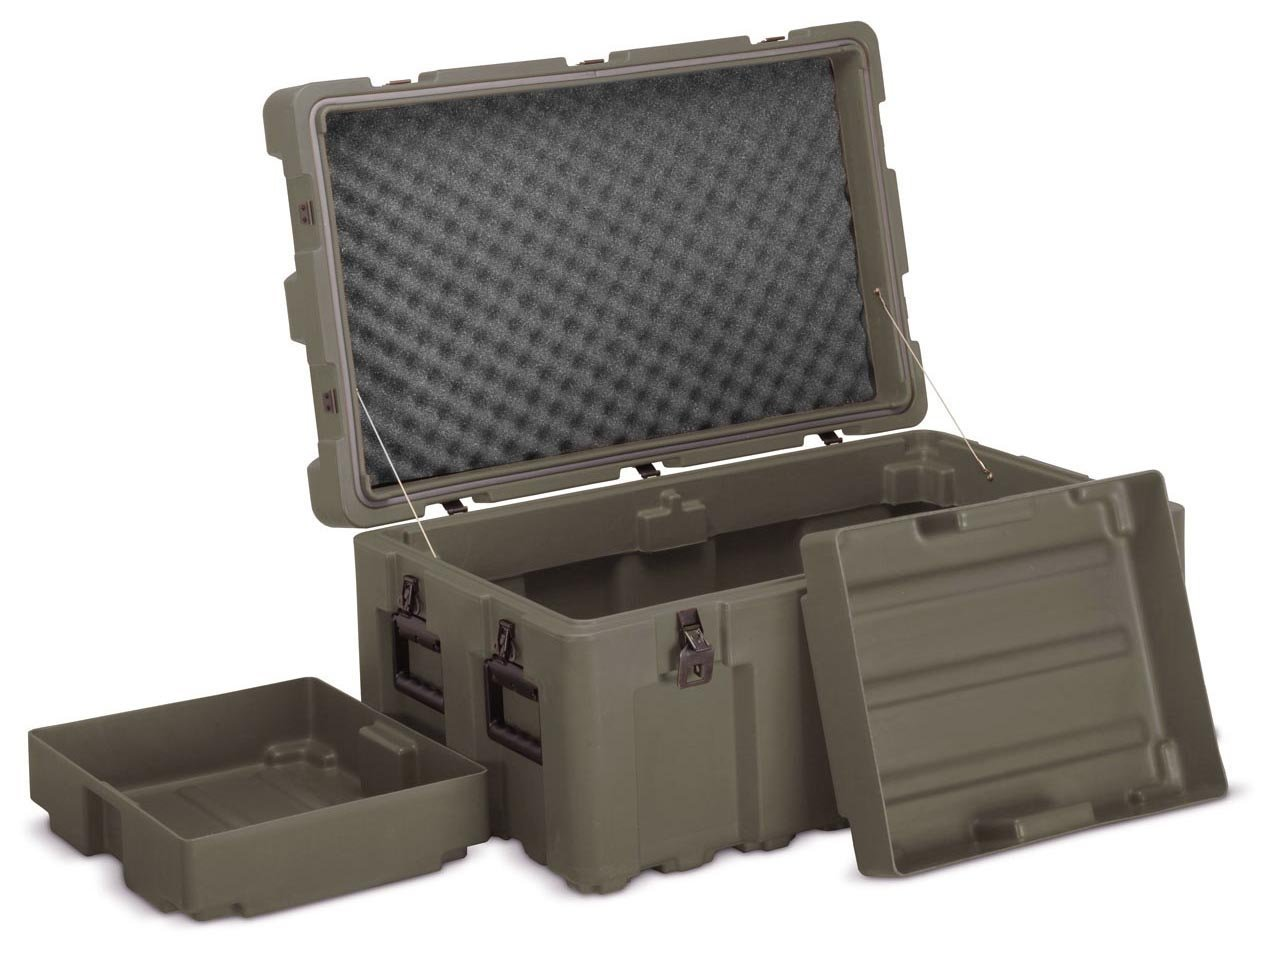 Amazon.com  Loadmaster Military Footlocker Case with Casters Removable Trays Lockable Hinged Lid from ECS Case Olive Drab  Sporting Goods  Sports u0026 ...  sc 1 st  Amazon.com & Amazon.com : Loadmaster Military Footlocker Case with Casters ...